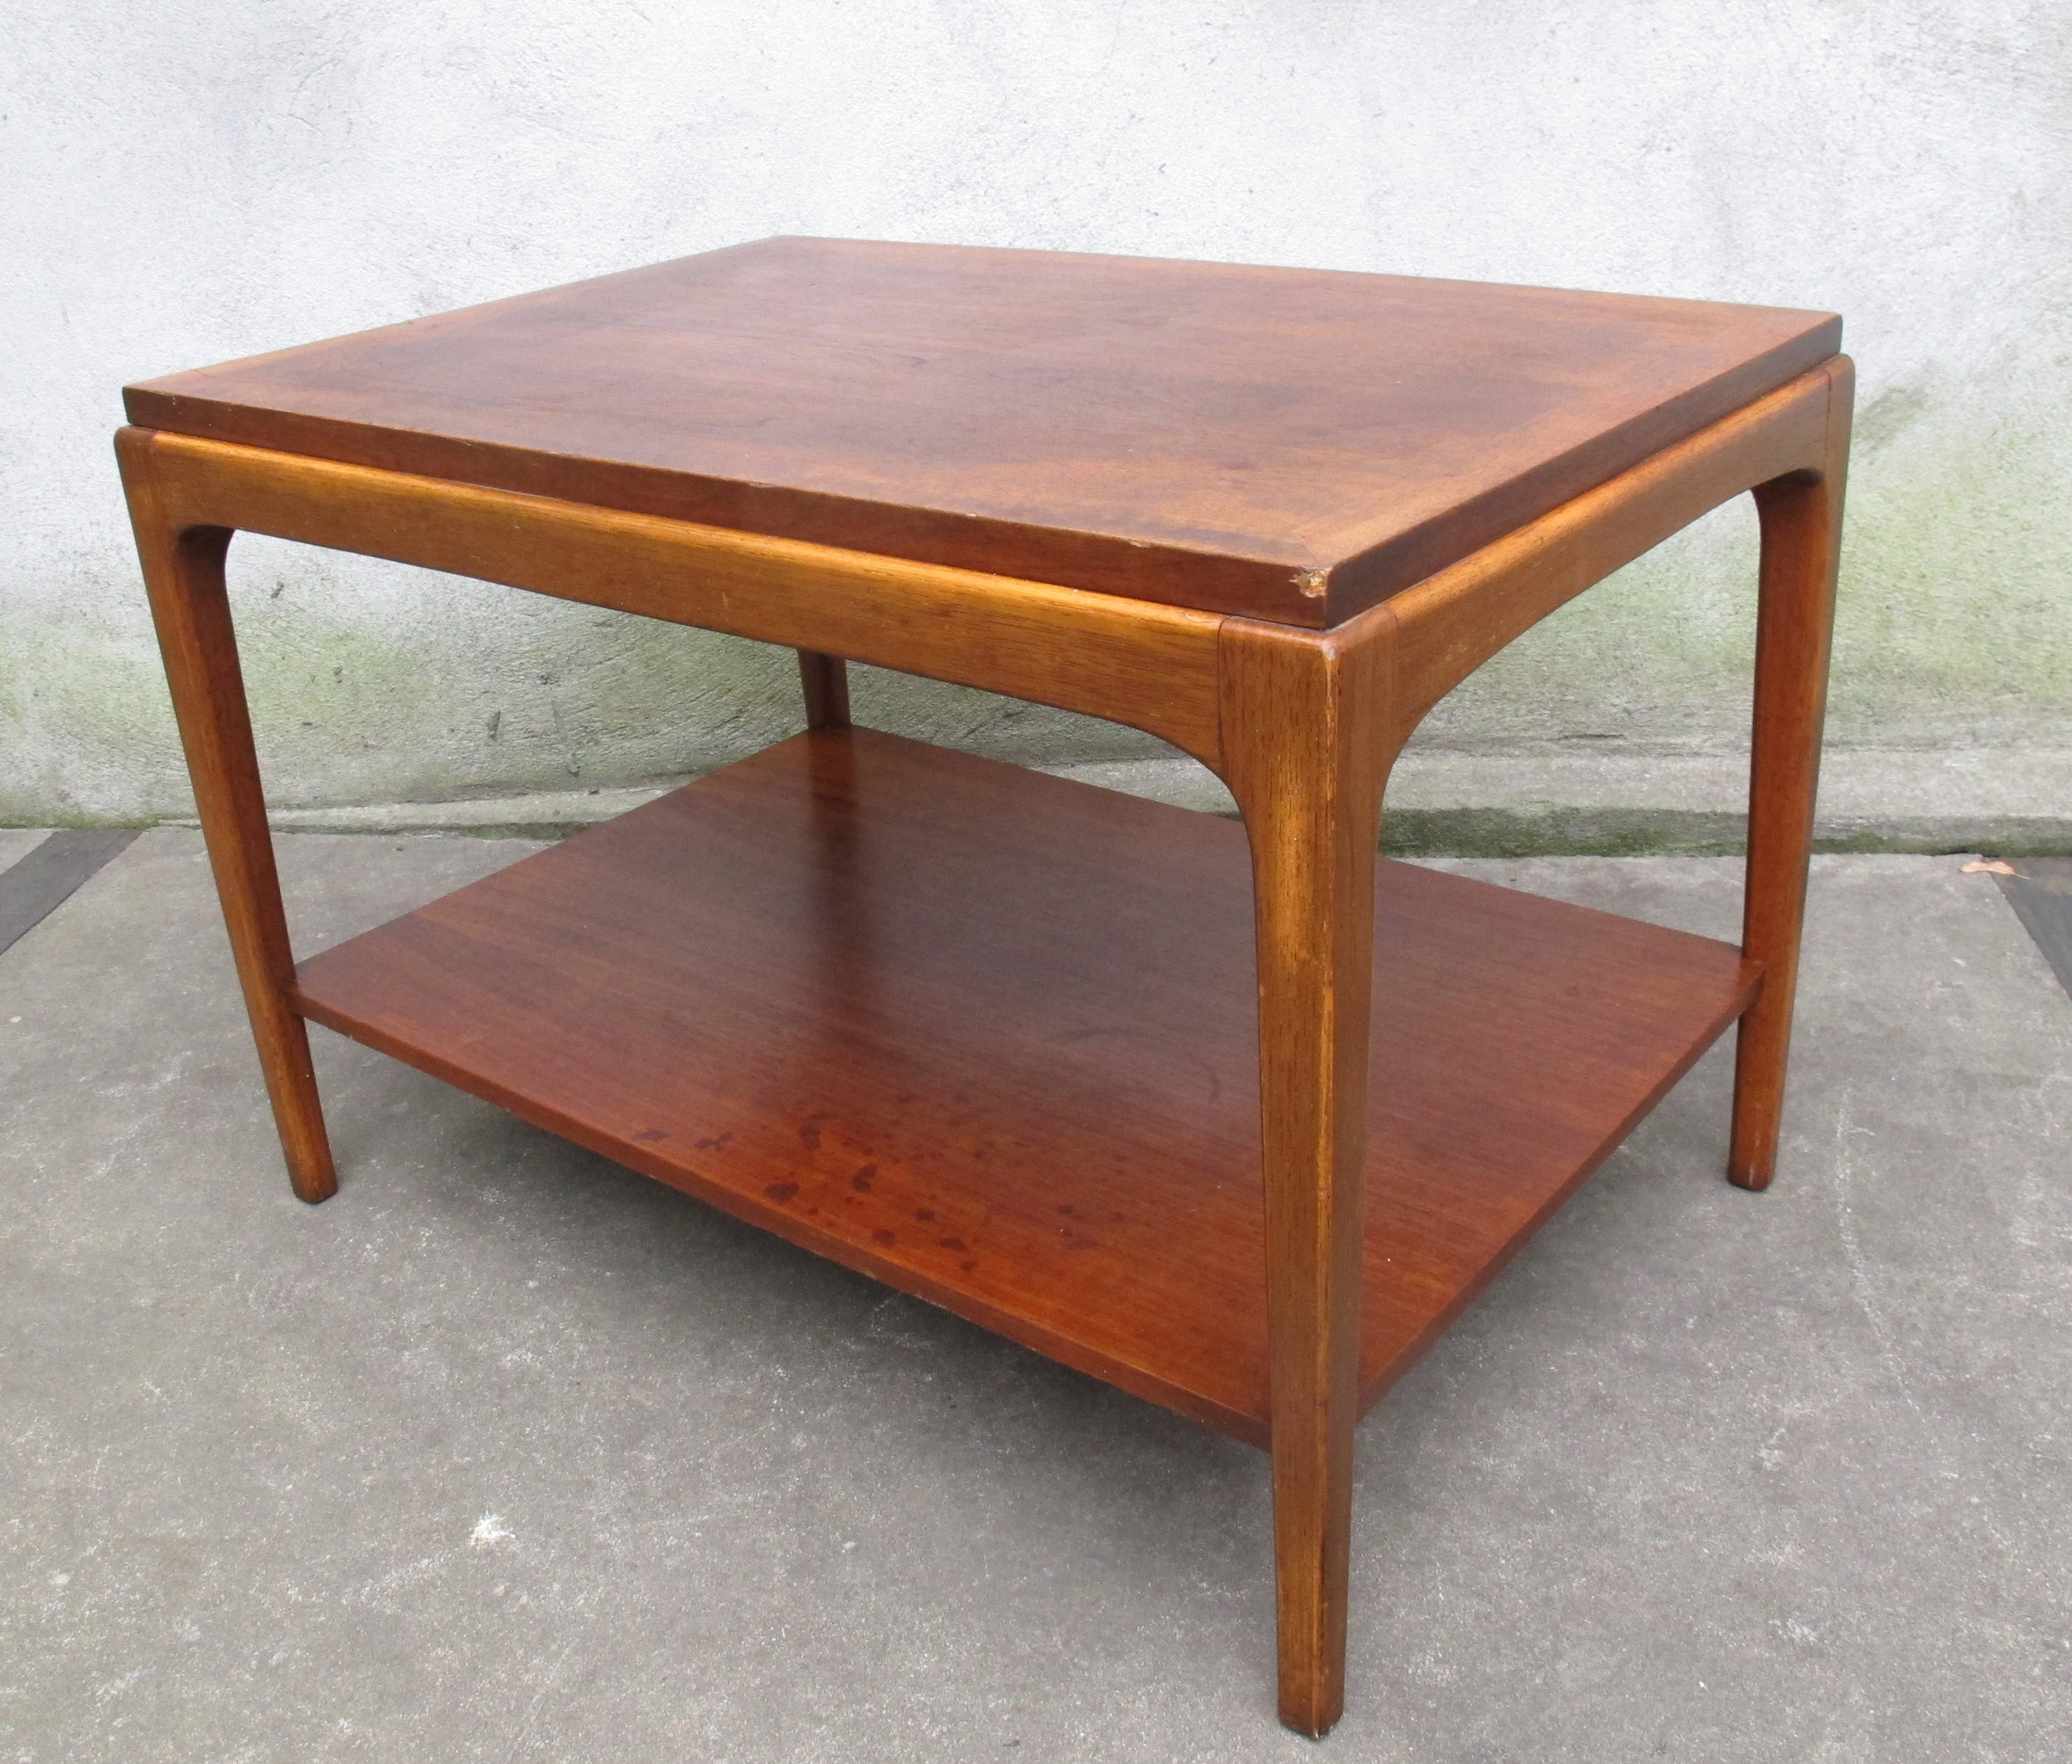 MID CENTURY TWO-TIER WALNUT END TABLE BY LANE